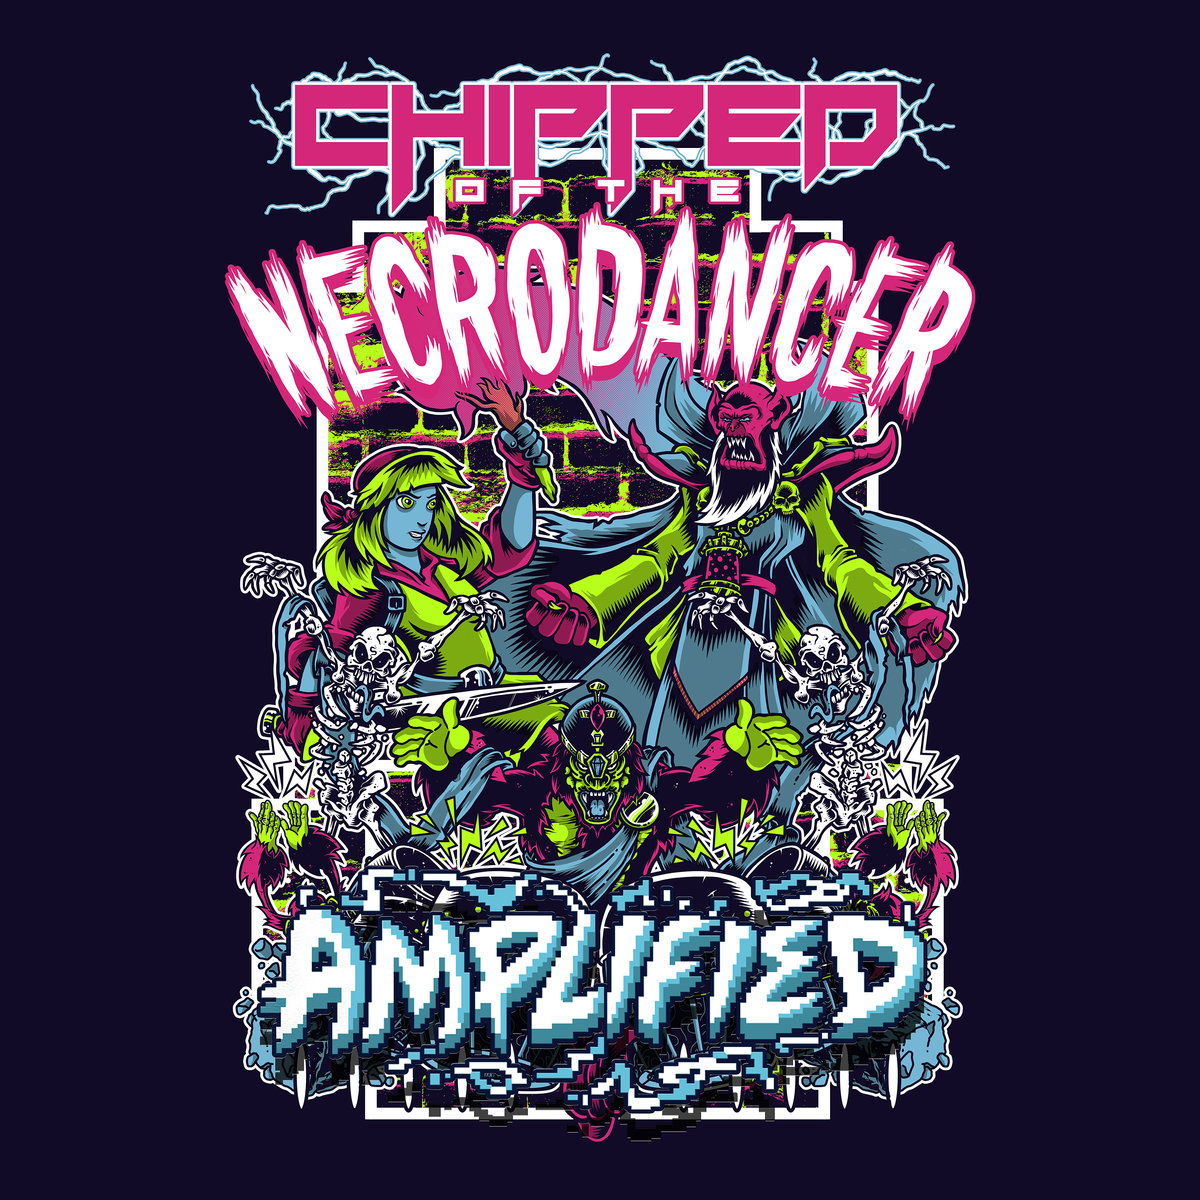 Chipzel - Chipped of the Necrodancer